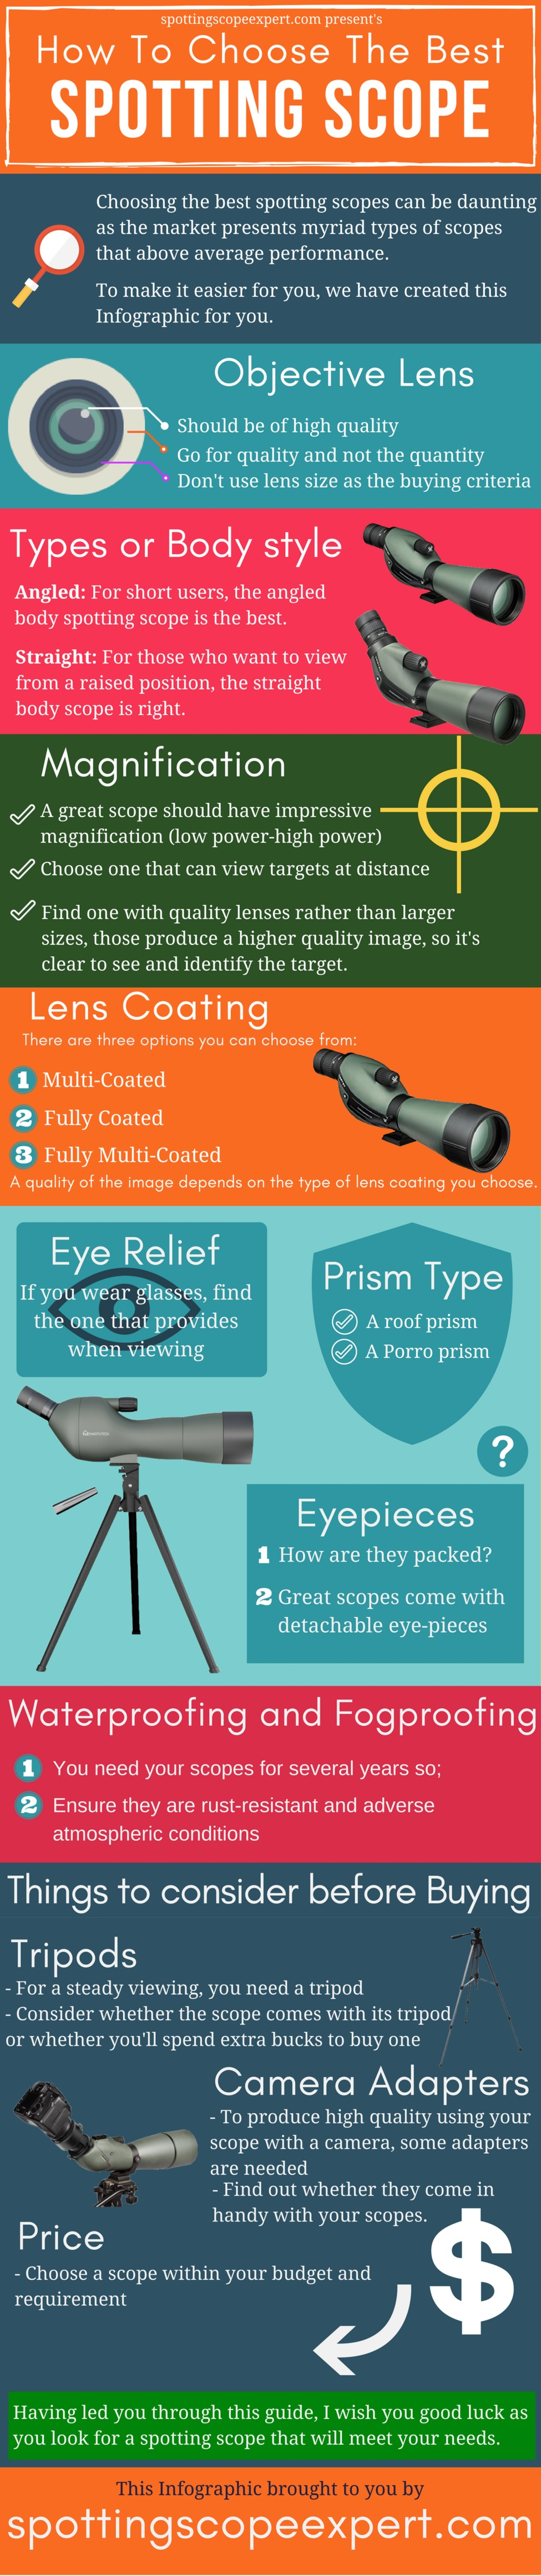 Spotting Scope Infographic